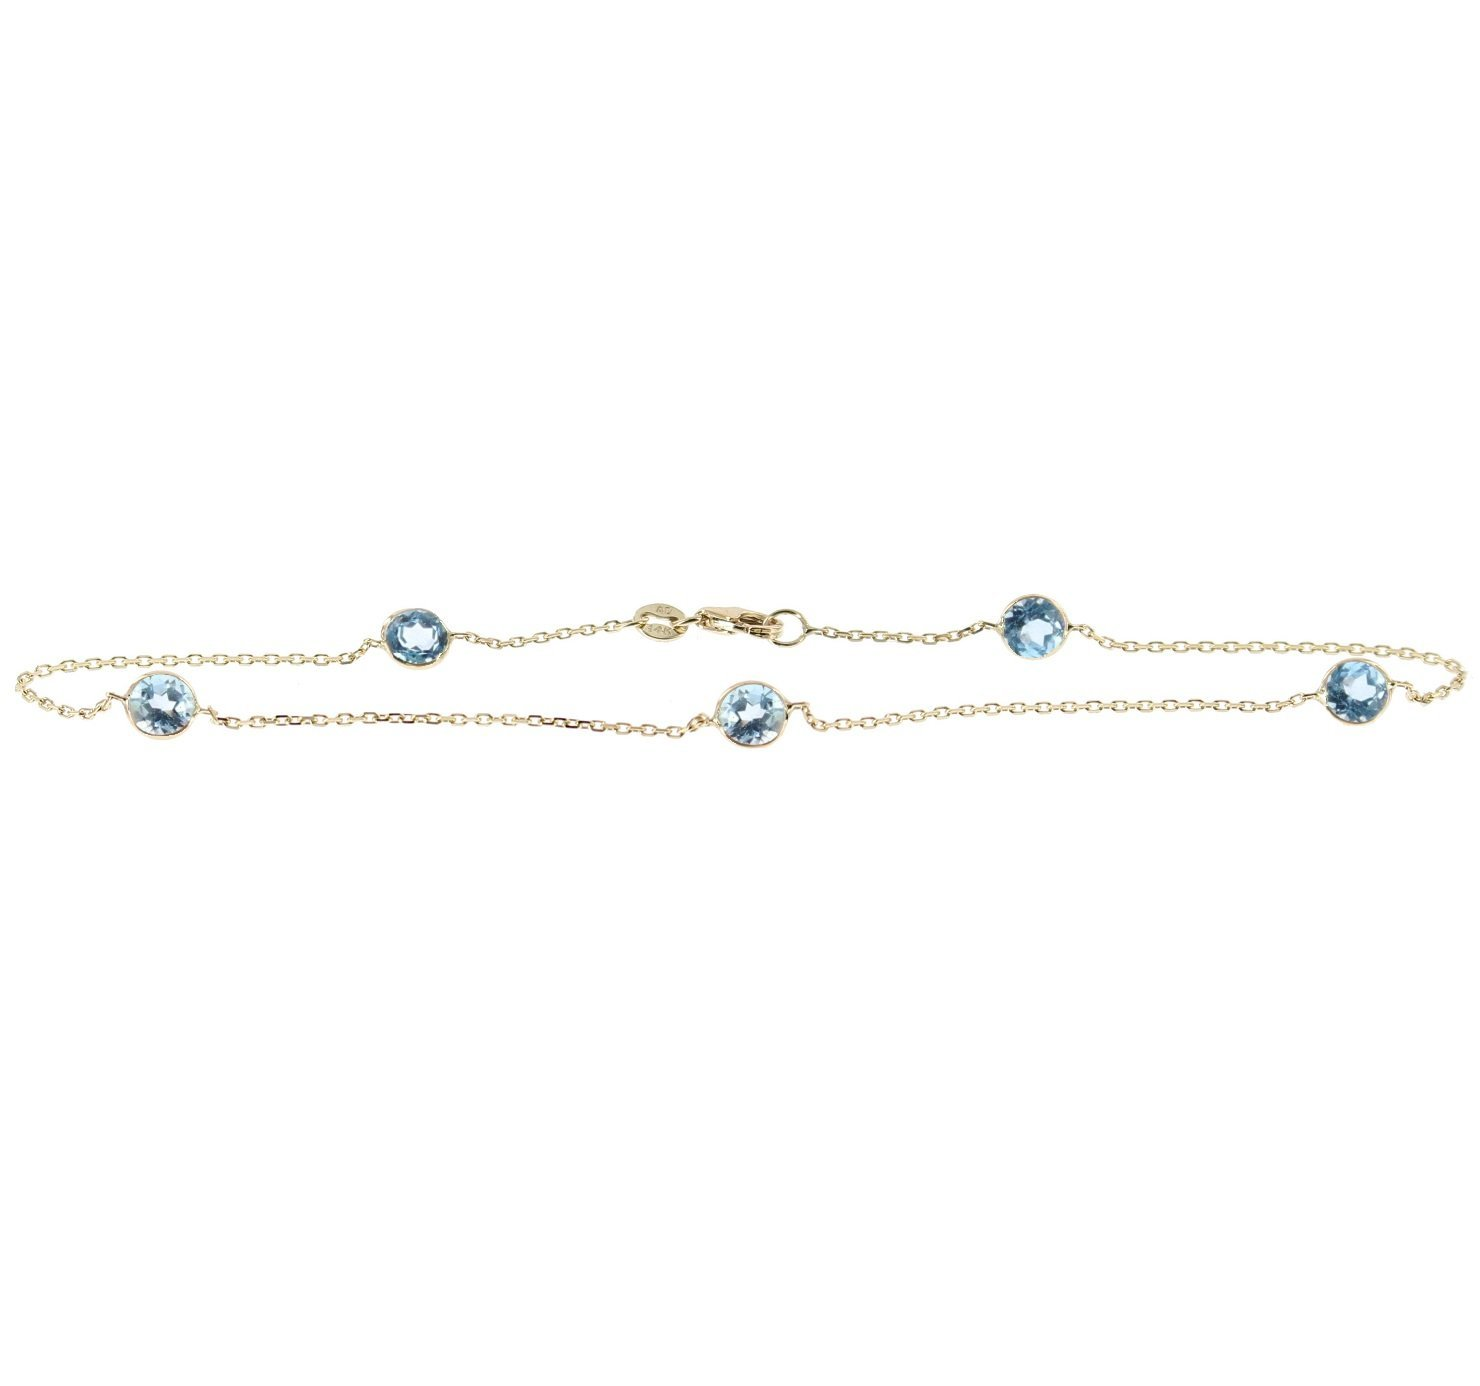 14k Yellow Gold Gemstone Anklet With Round 5mm Blue Topaz Stations 9 - 11 Inches